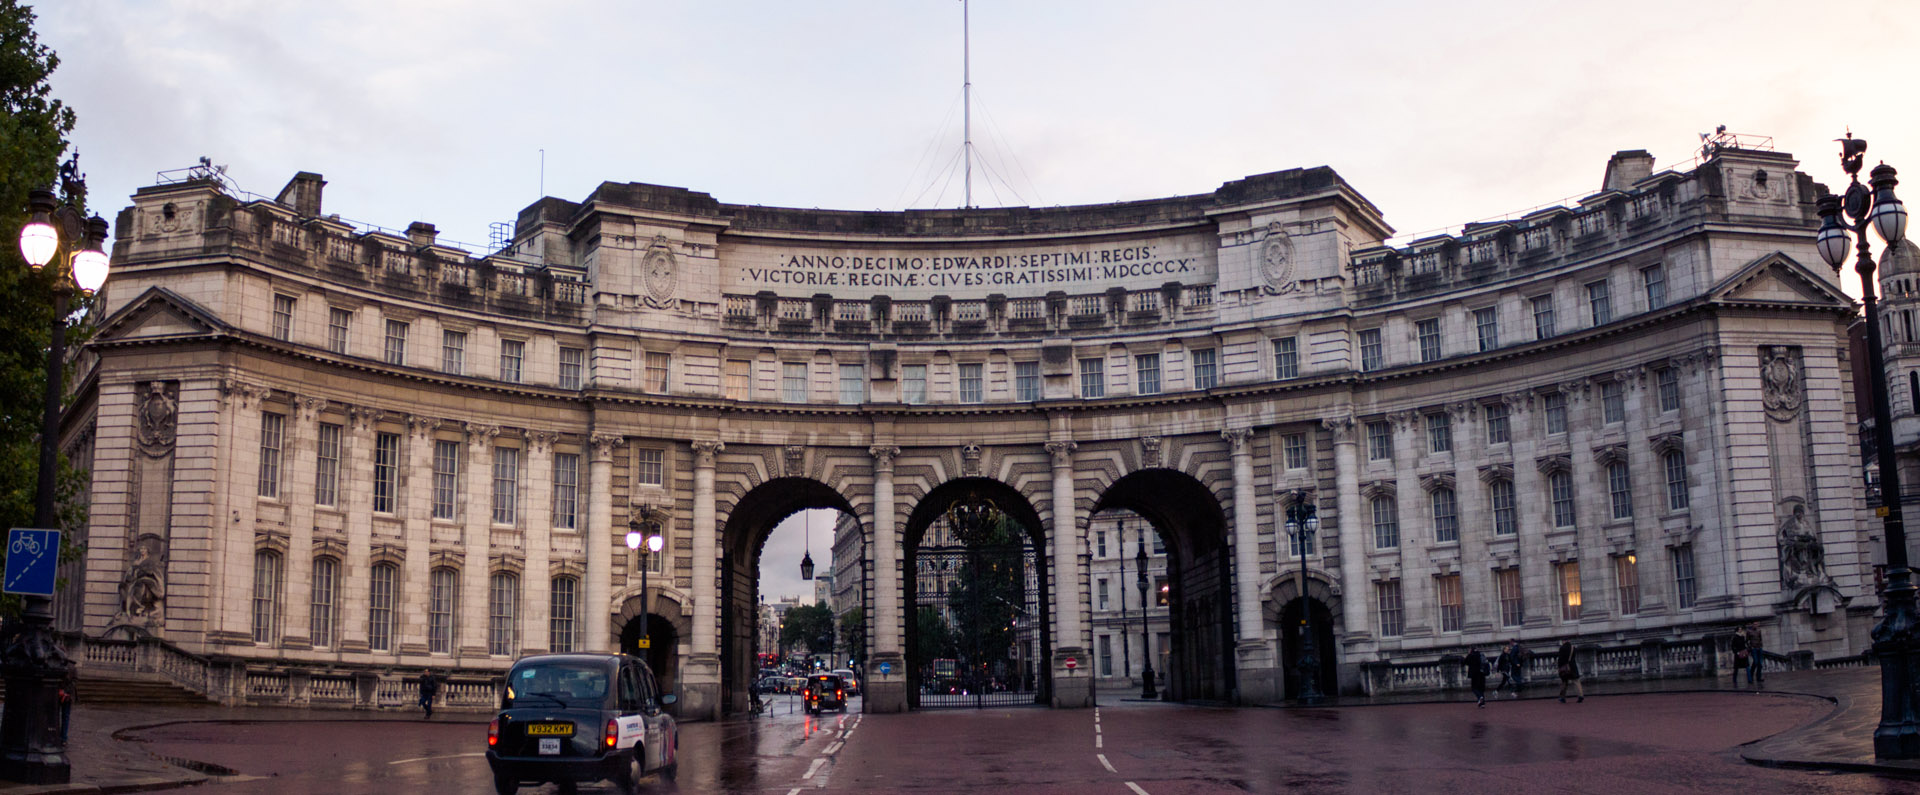 Londra Admiralty Arch